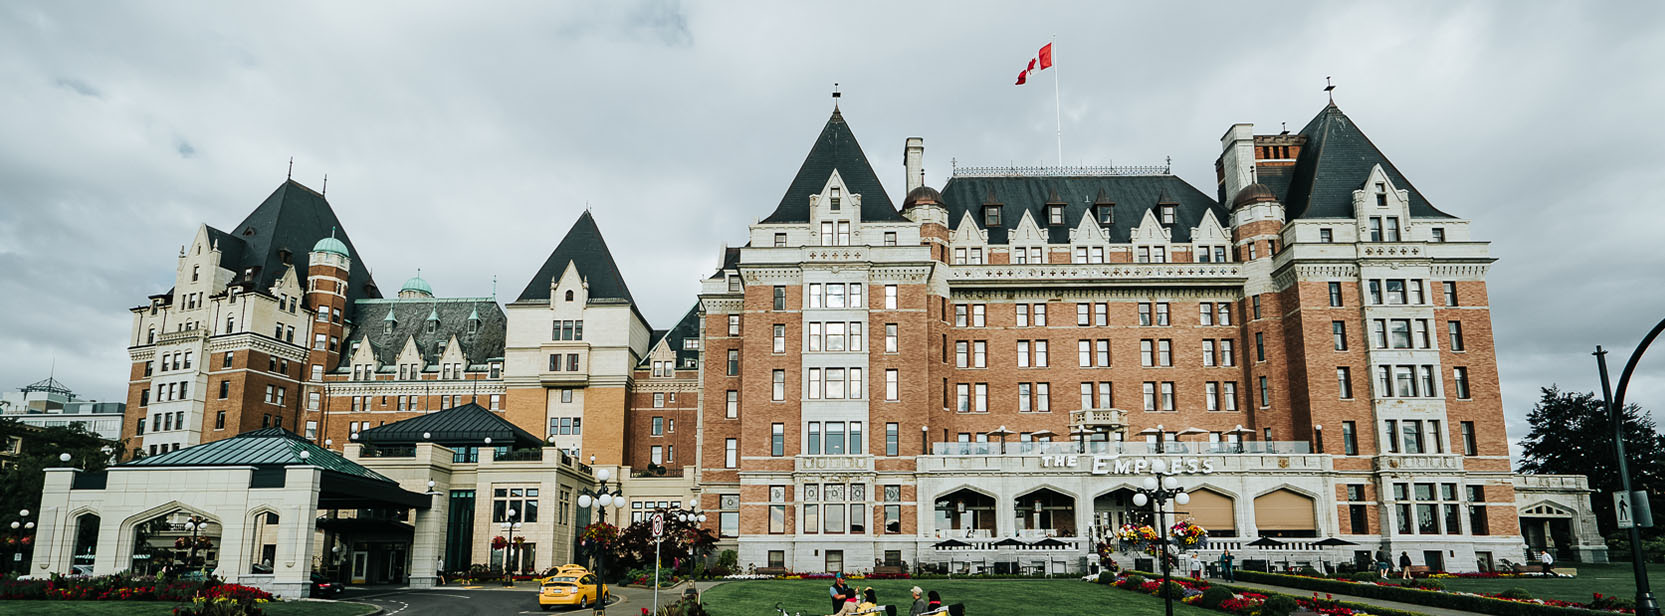 fairmont empress staycation stay local offer